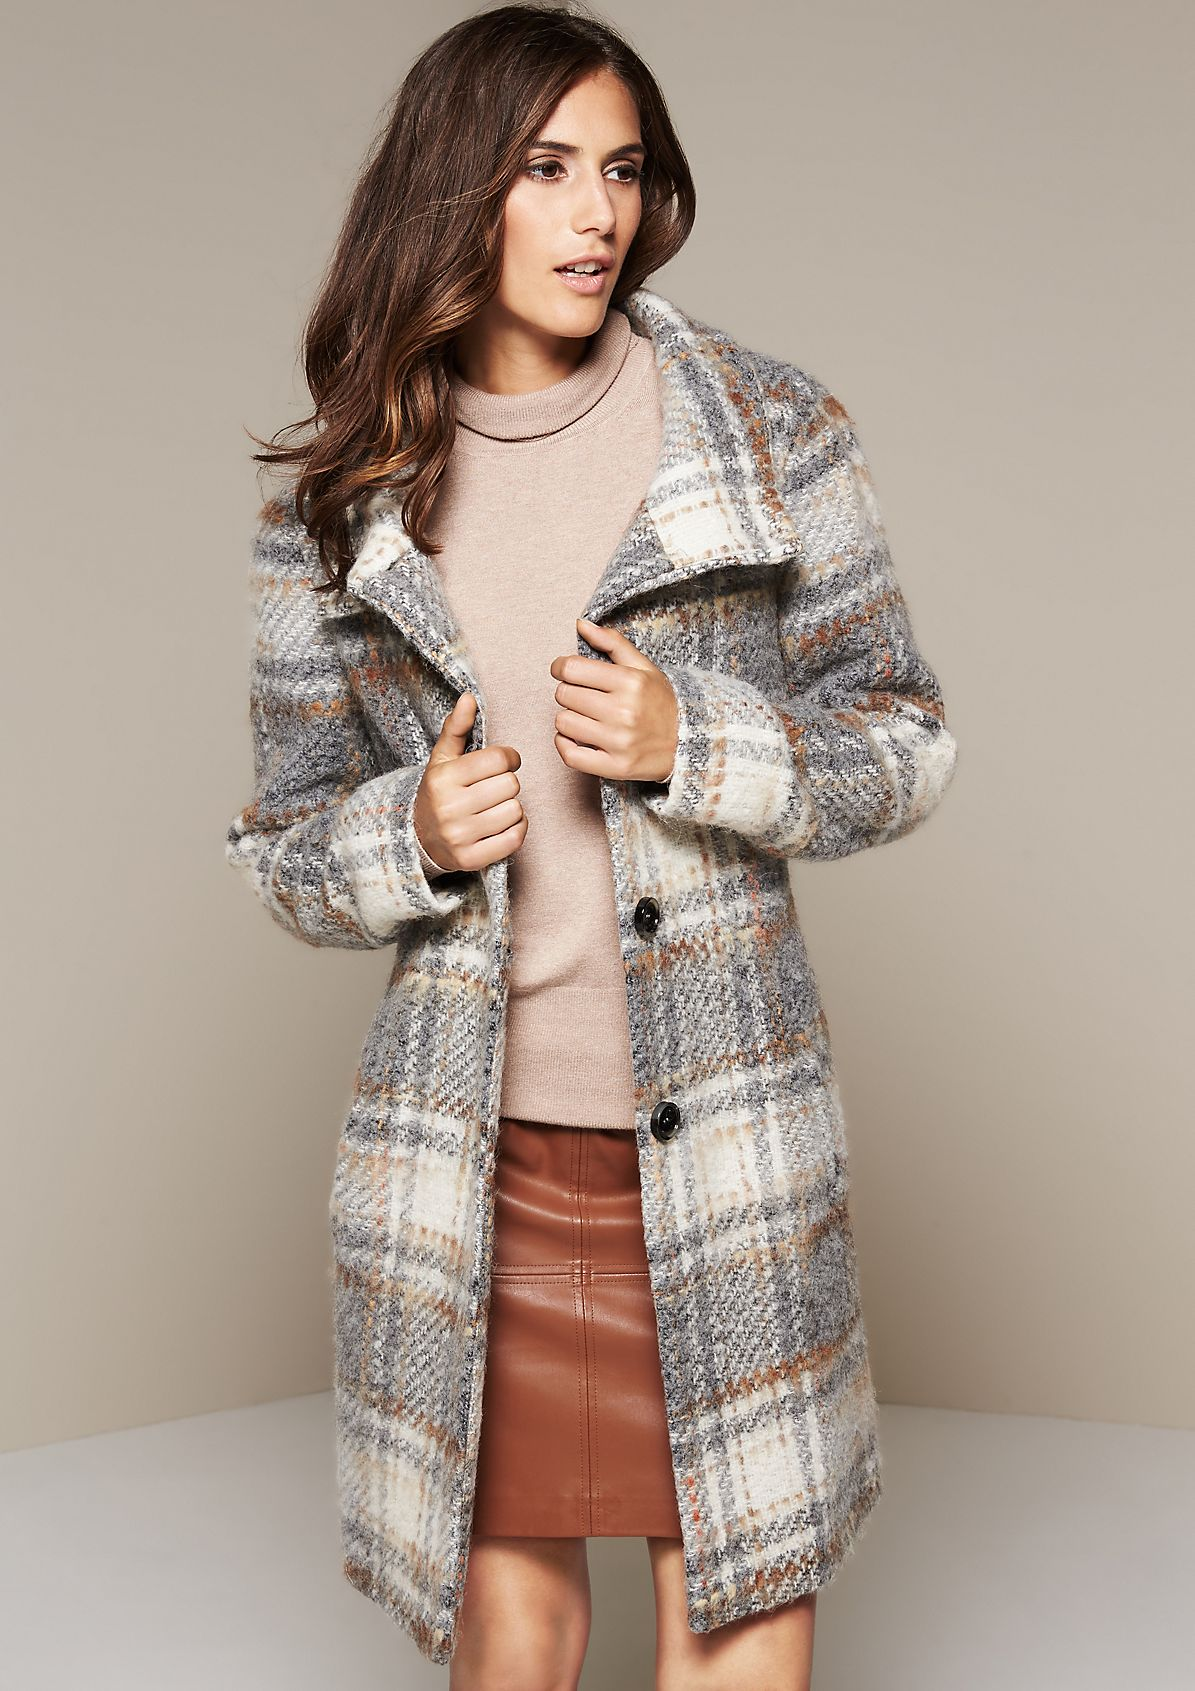 Warm woolly winter coat with a beautiful pattern from s.Oliver